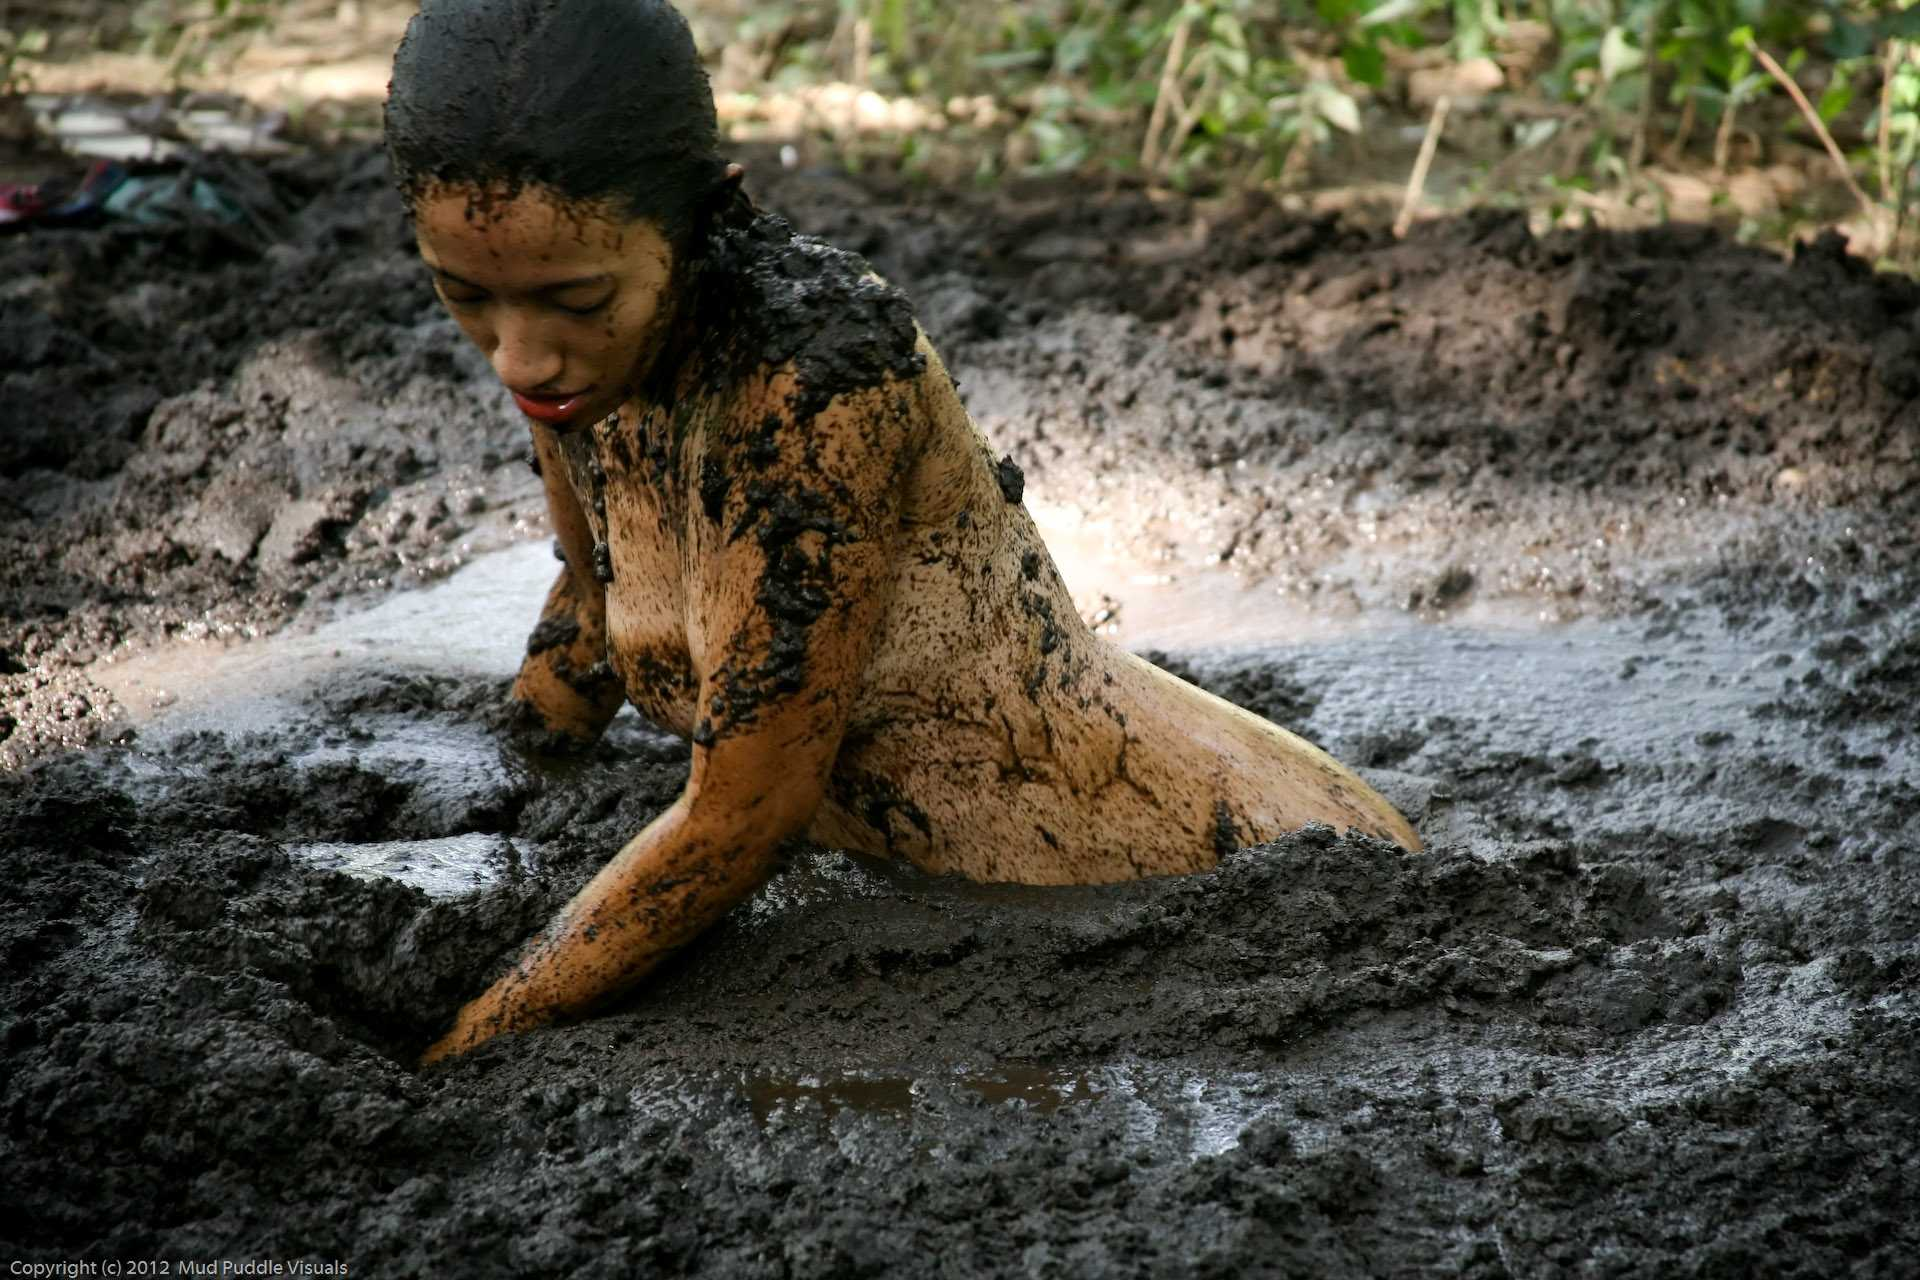 Mud Puddle Visuals on Twitter: Watch May Jump in All